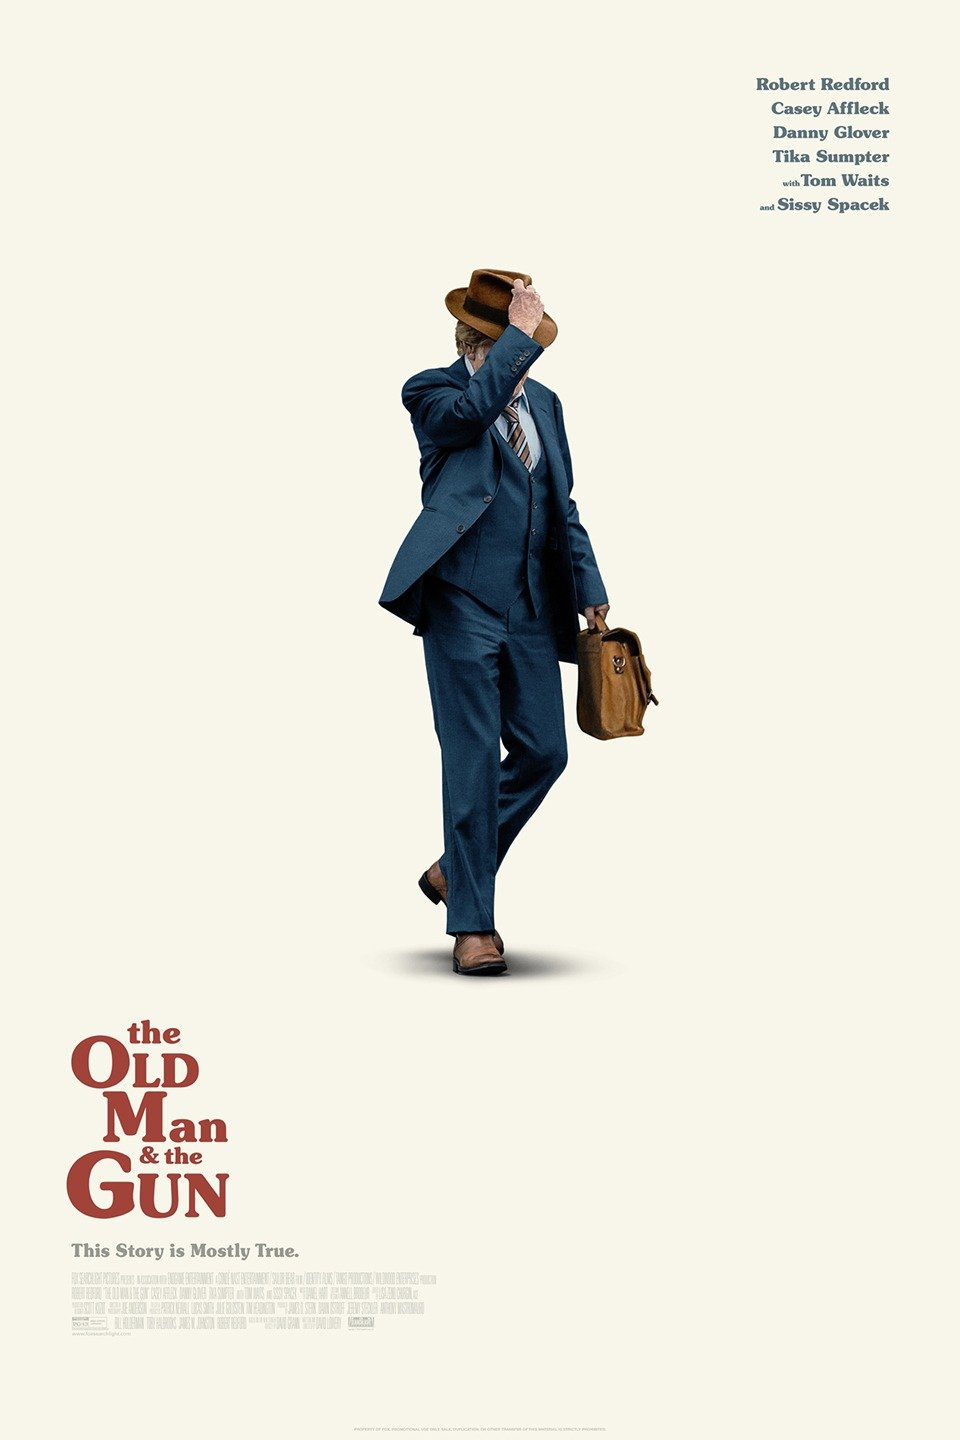 The Old Man & the Gun, directed by Robert Redford